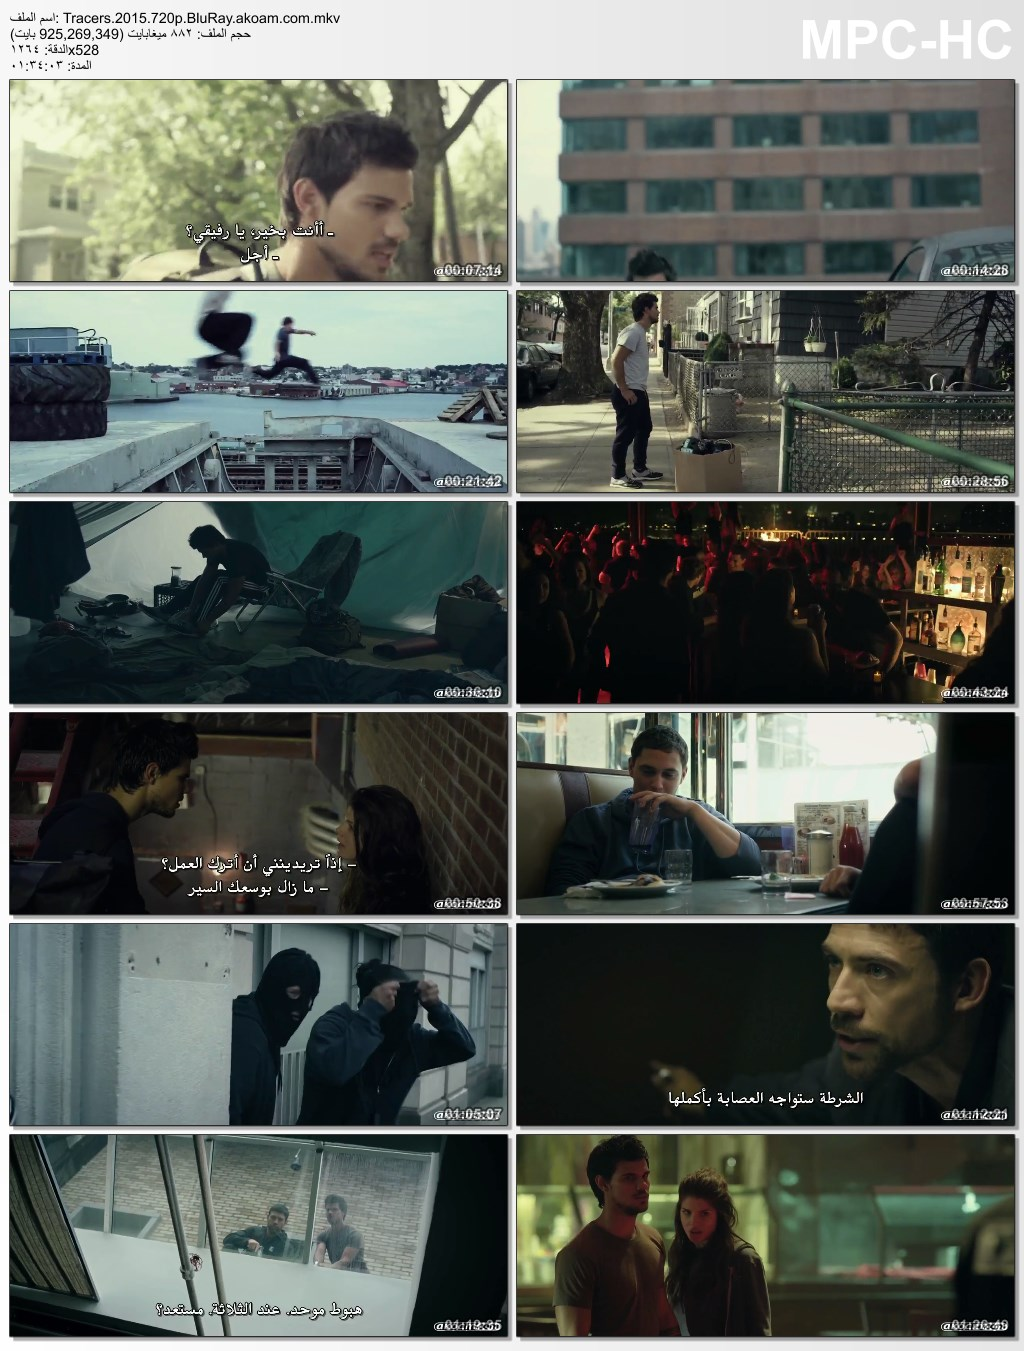 Tracers 2015,Tracers,البلواري,الأكشن,تايلور لوتنر,Taylor Lautner,Marie Avgeropoulos